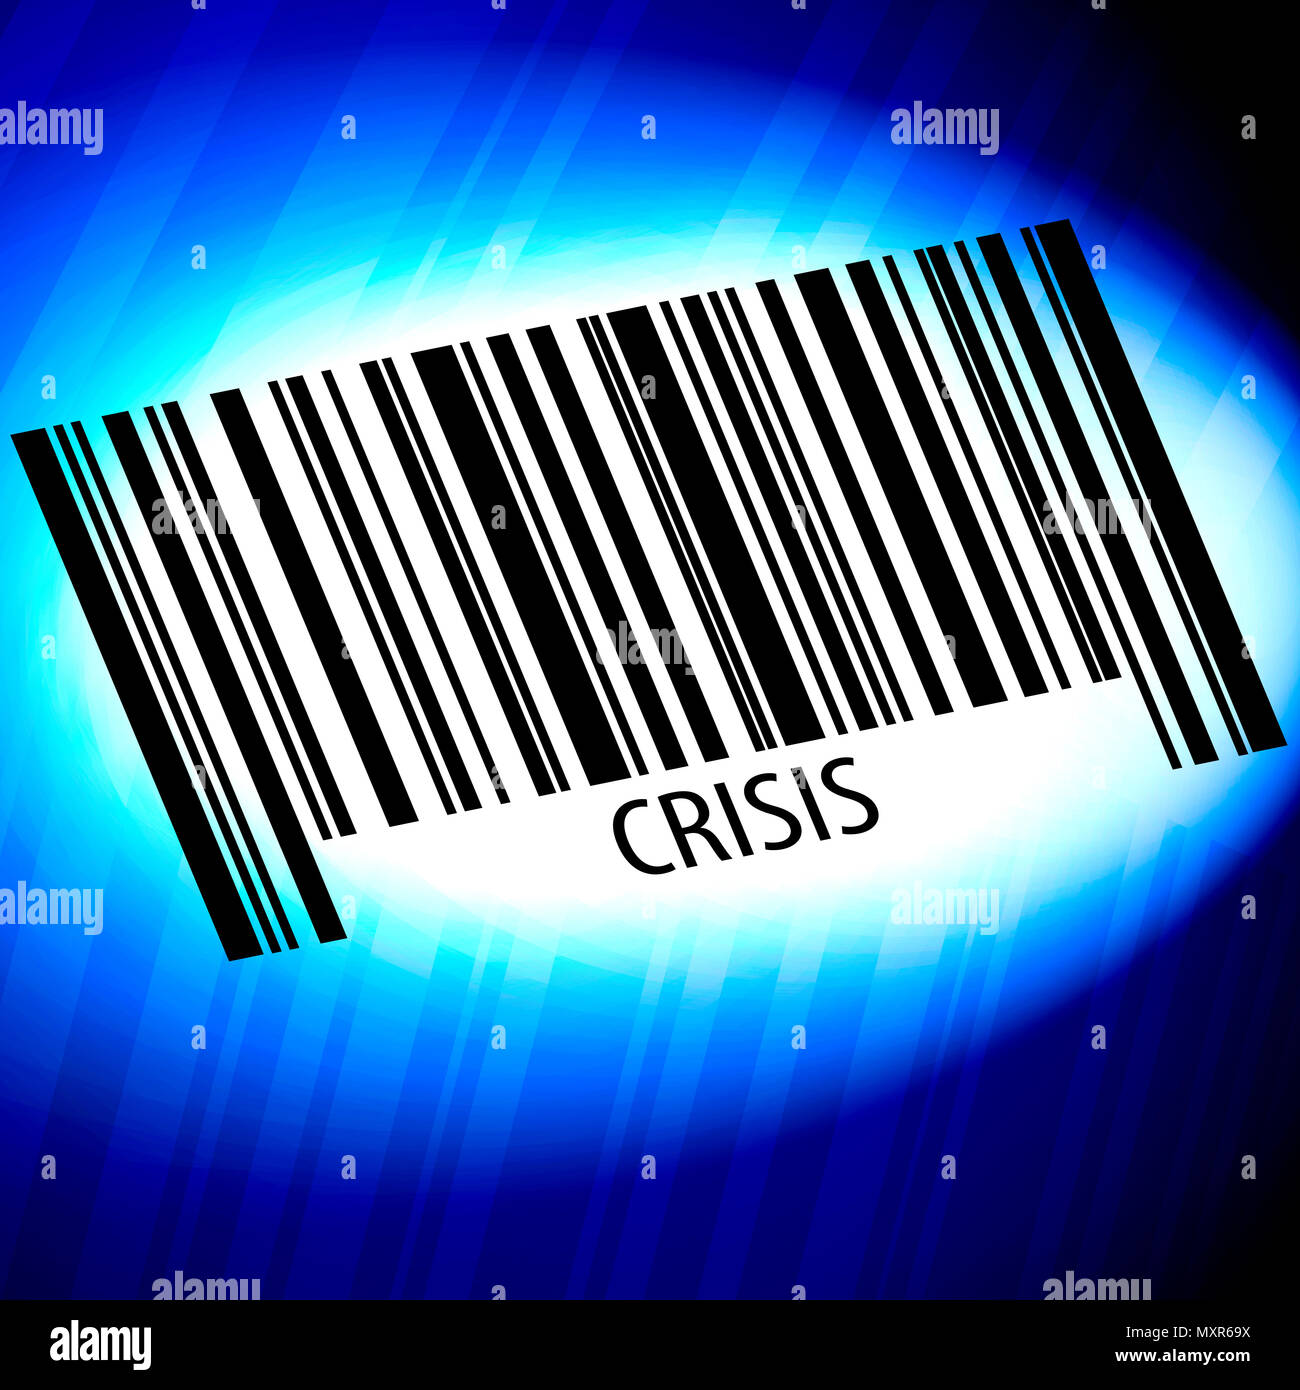 Crisis - barcode with blue Background - Stock Image